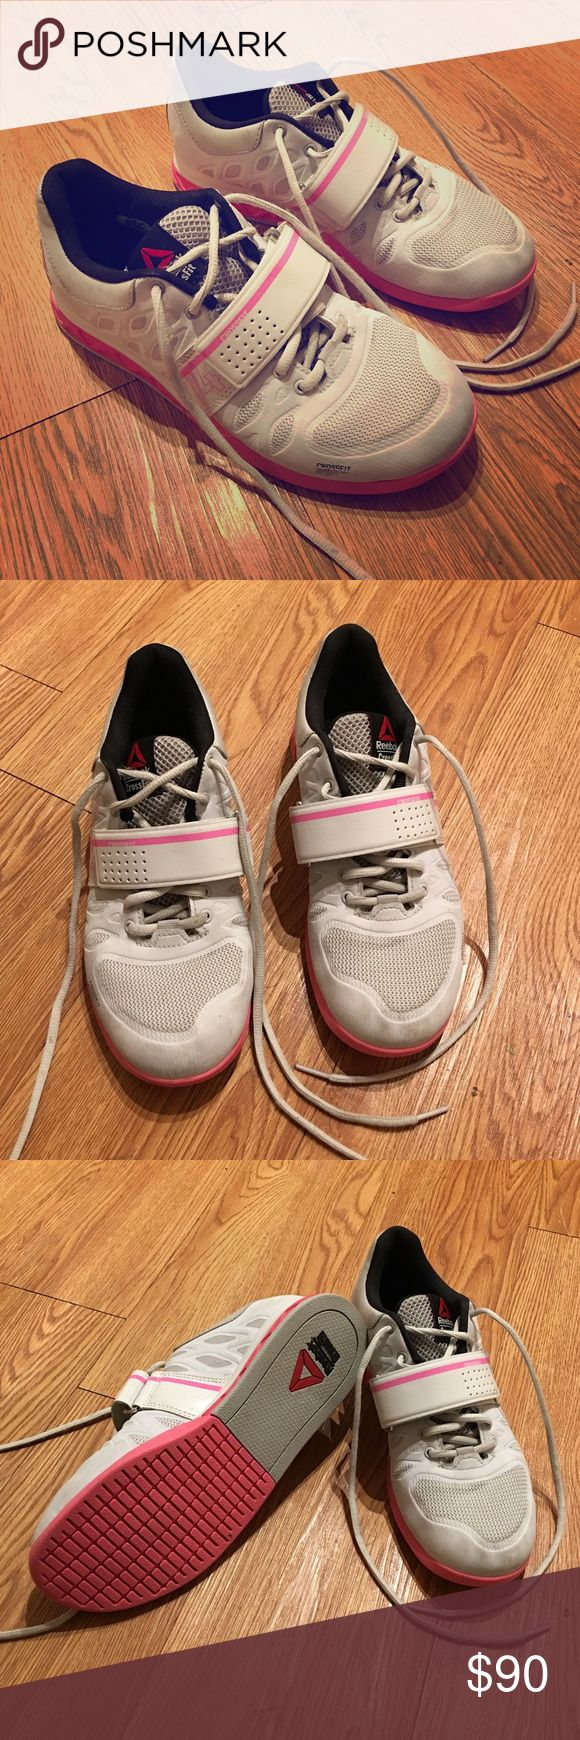 Crossfit Lifting Shoes Reebok Crossfit Powerbax Shoes, worn twice! Only minor grey marks on toes! Pink and white and super cute and comfy! Reebok Shoes Athletic Shoes